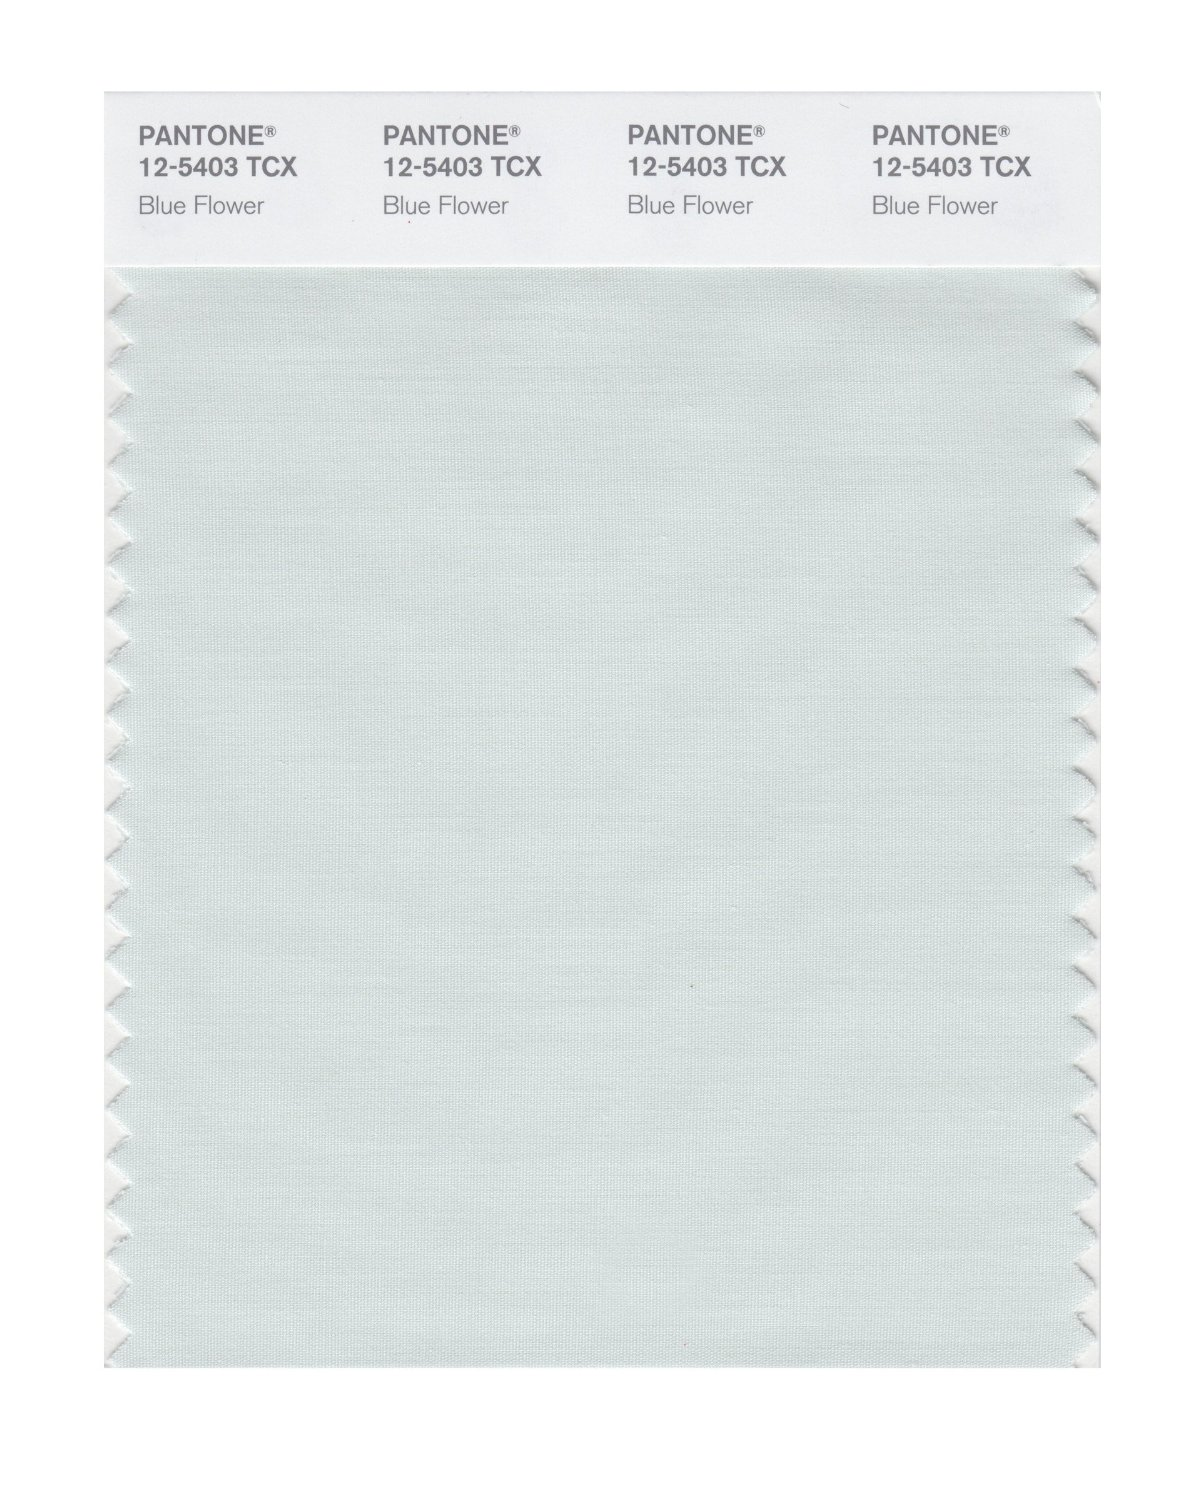 Pantone Smart Swatch 12-5403 Blue Flower